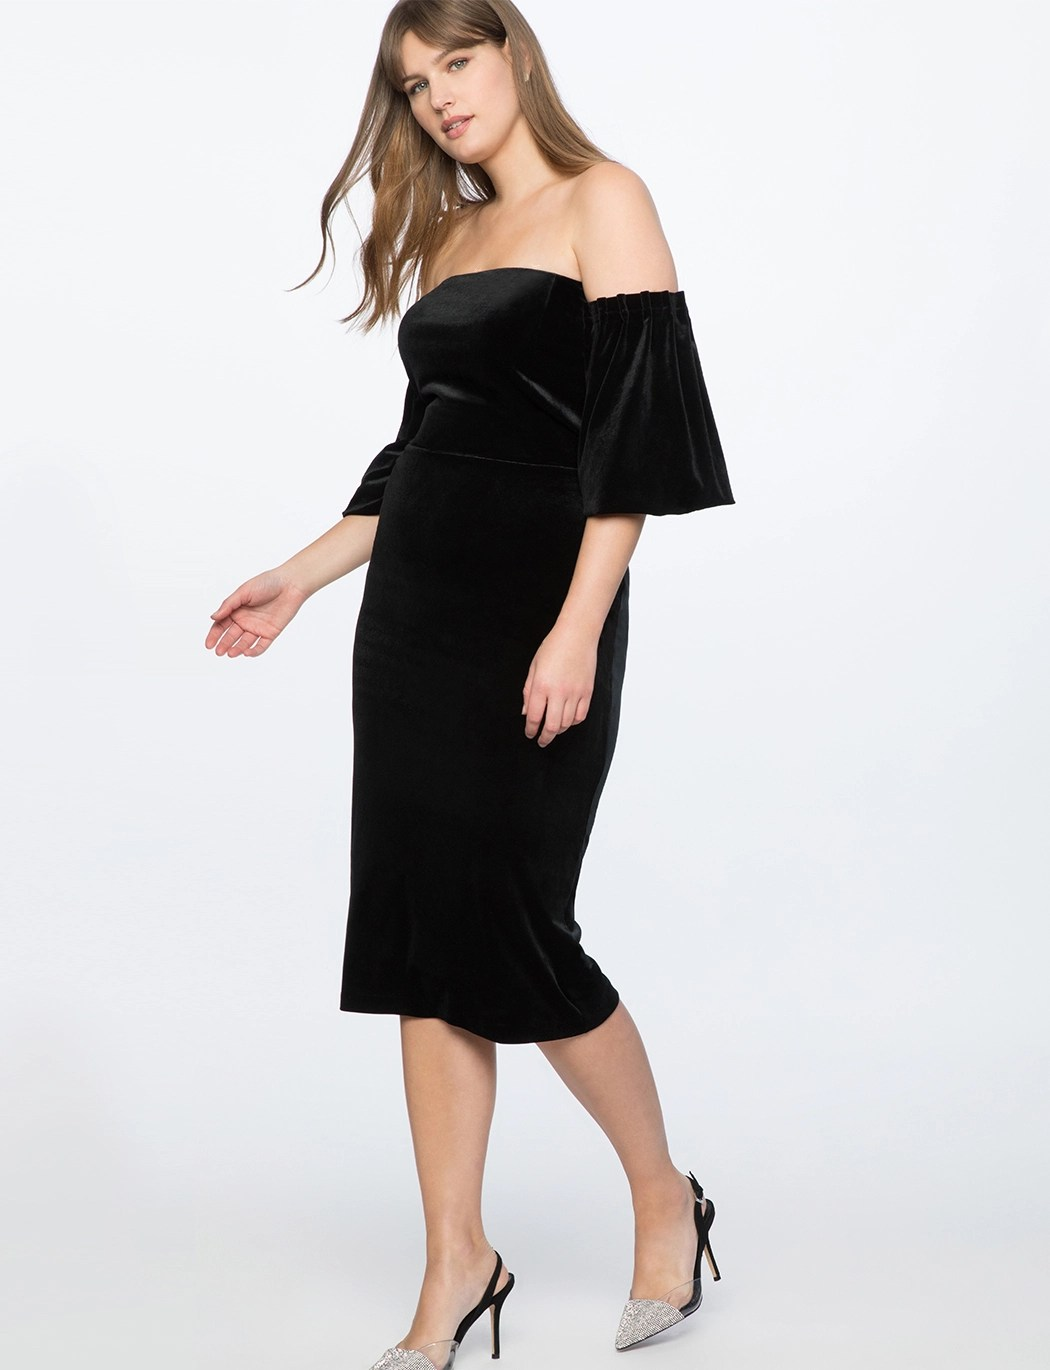 Strapless Velvet Dress with Full Sleeves 5